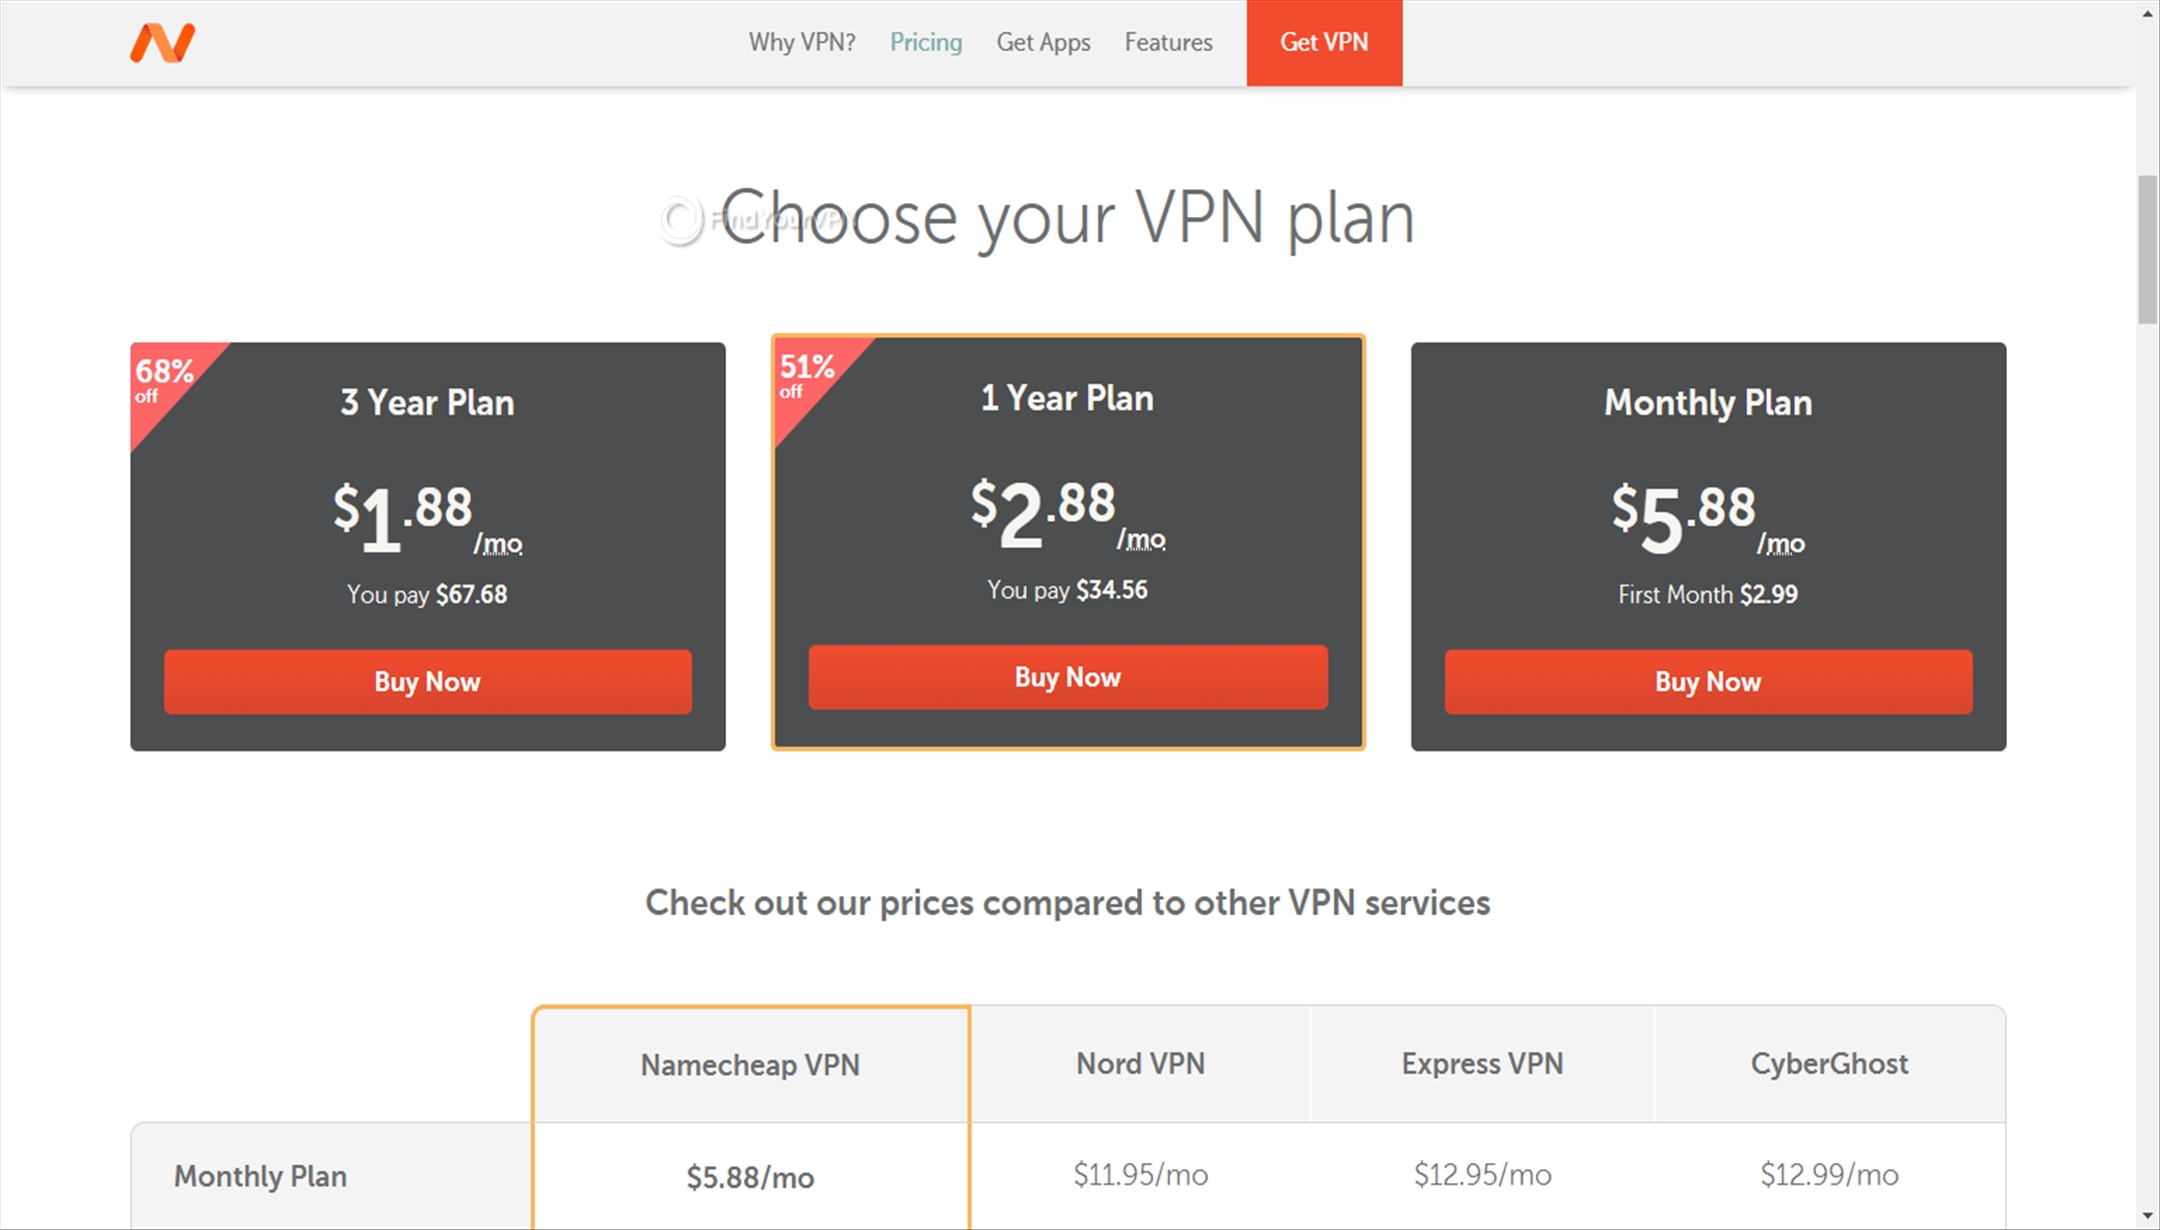 You can choose from various subscription plans for Namecheap VPN